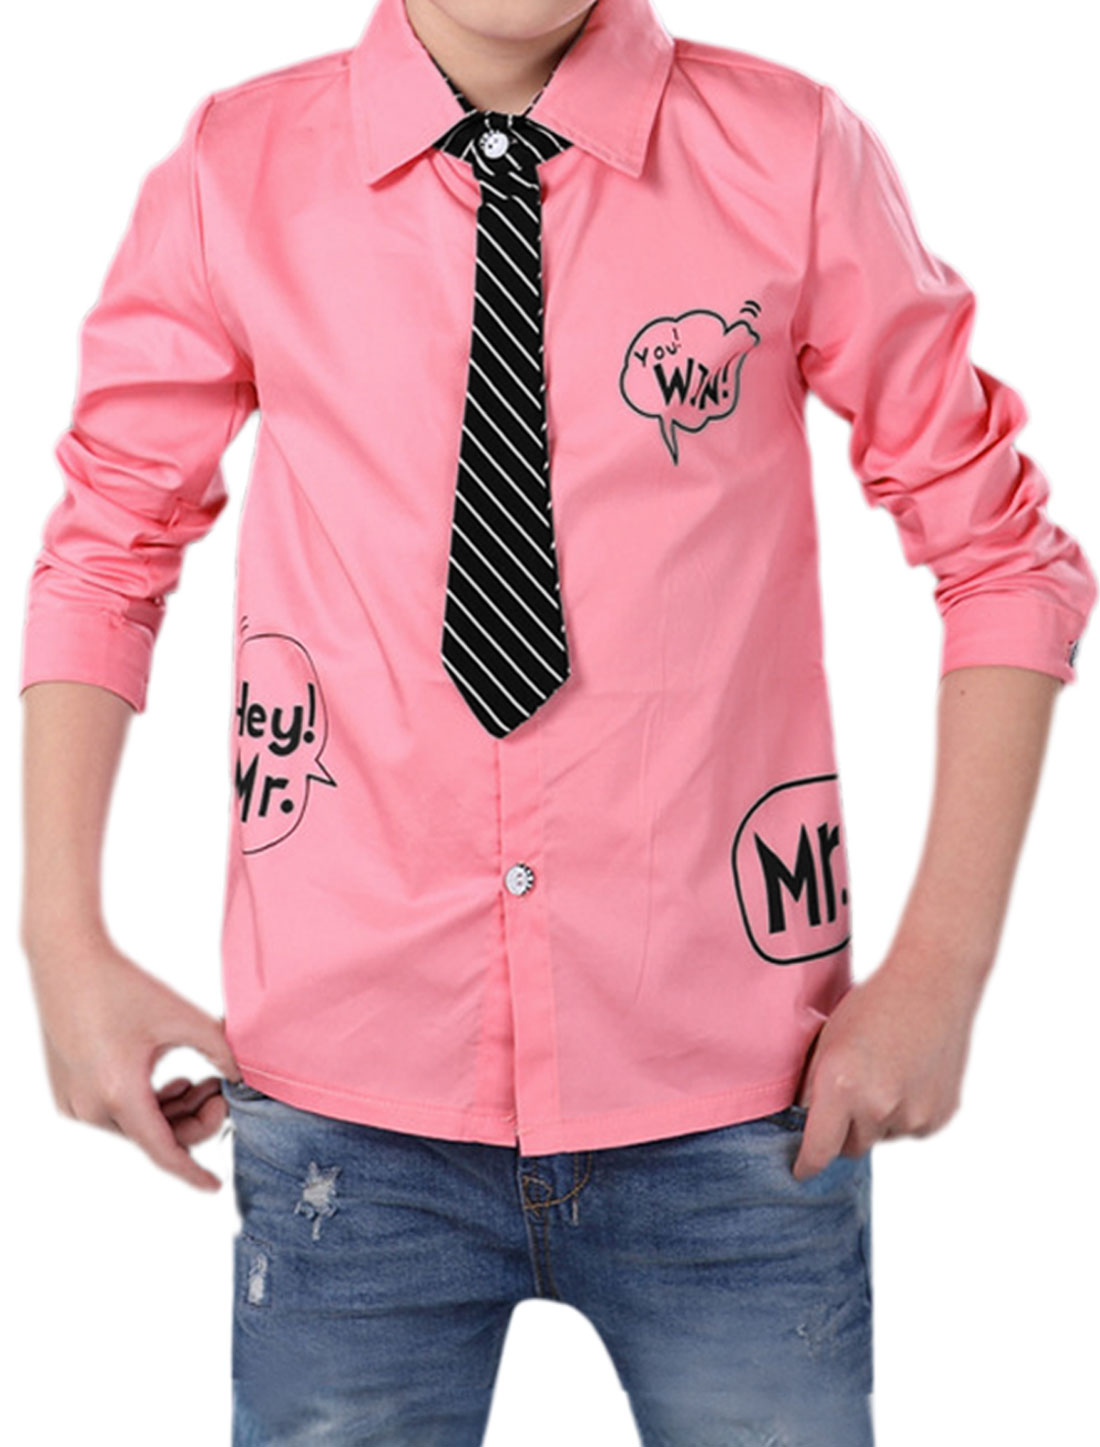 Boys Letters Prints Mock Striped Tie Point Collar Shirt Pink 8